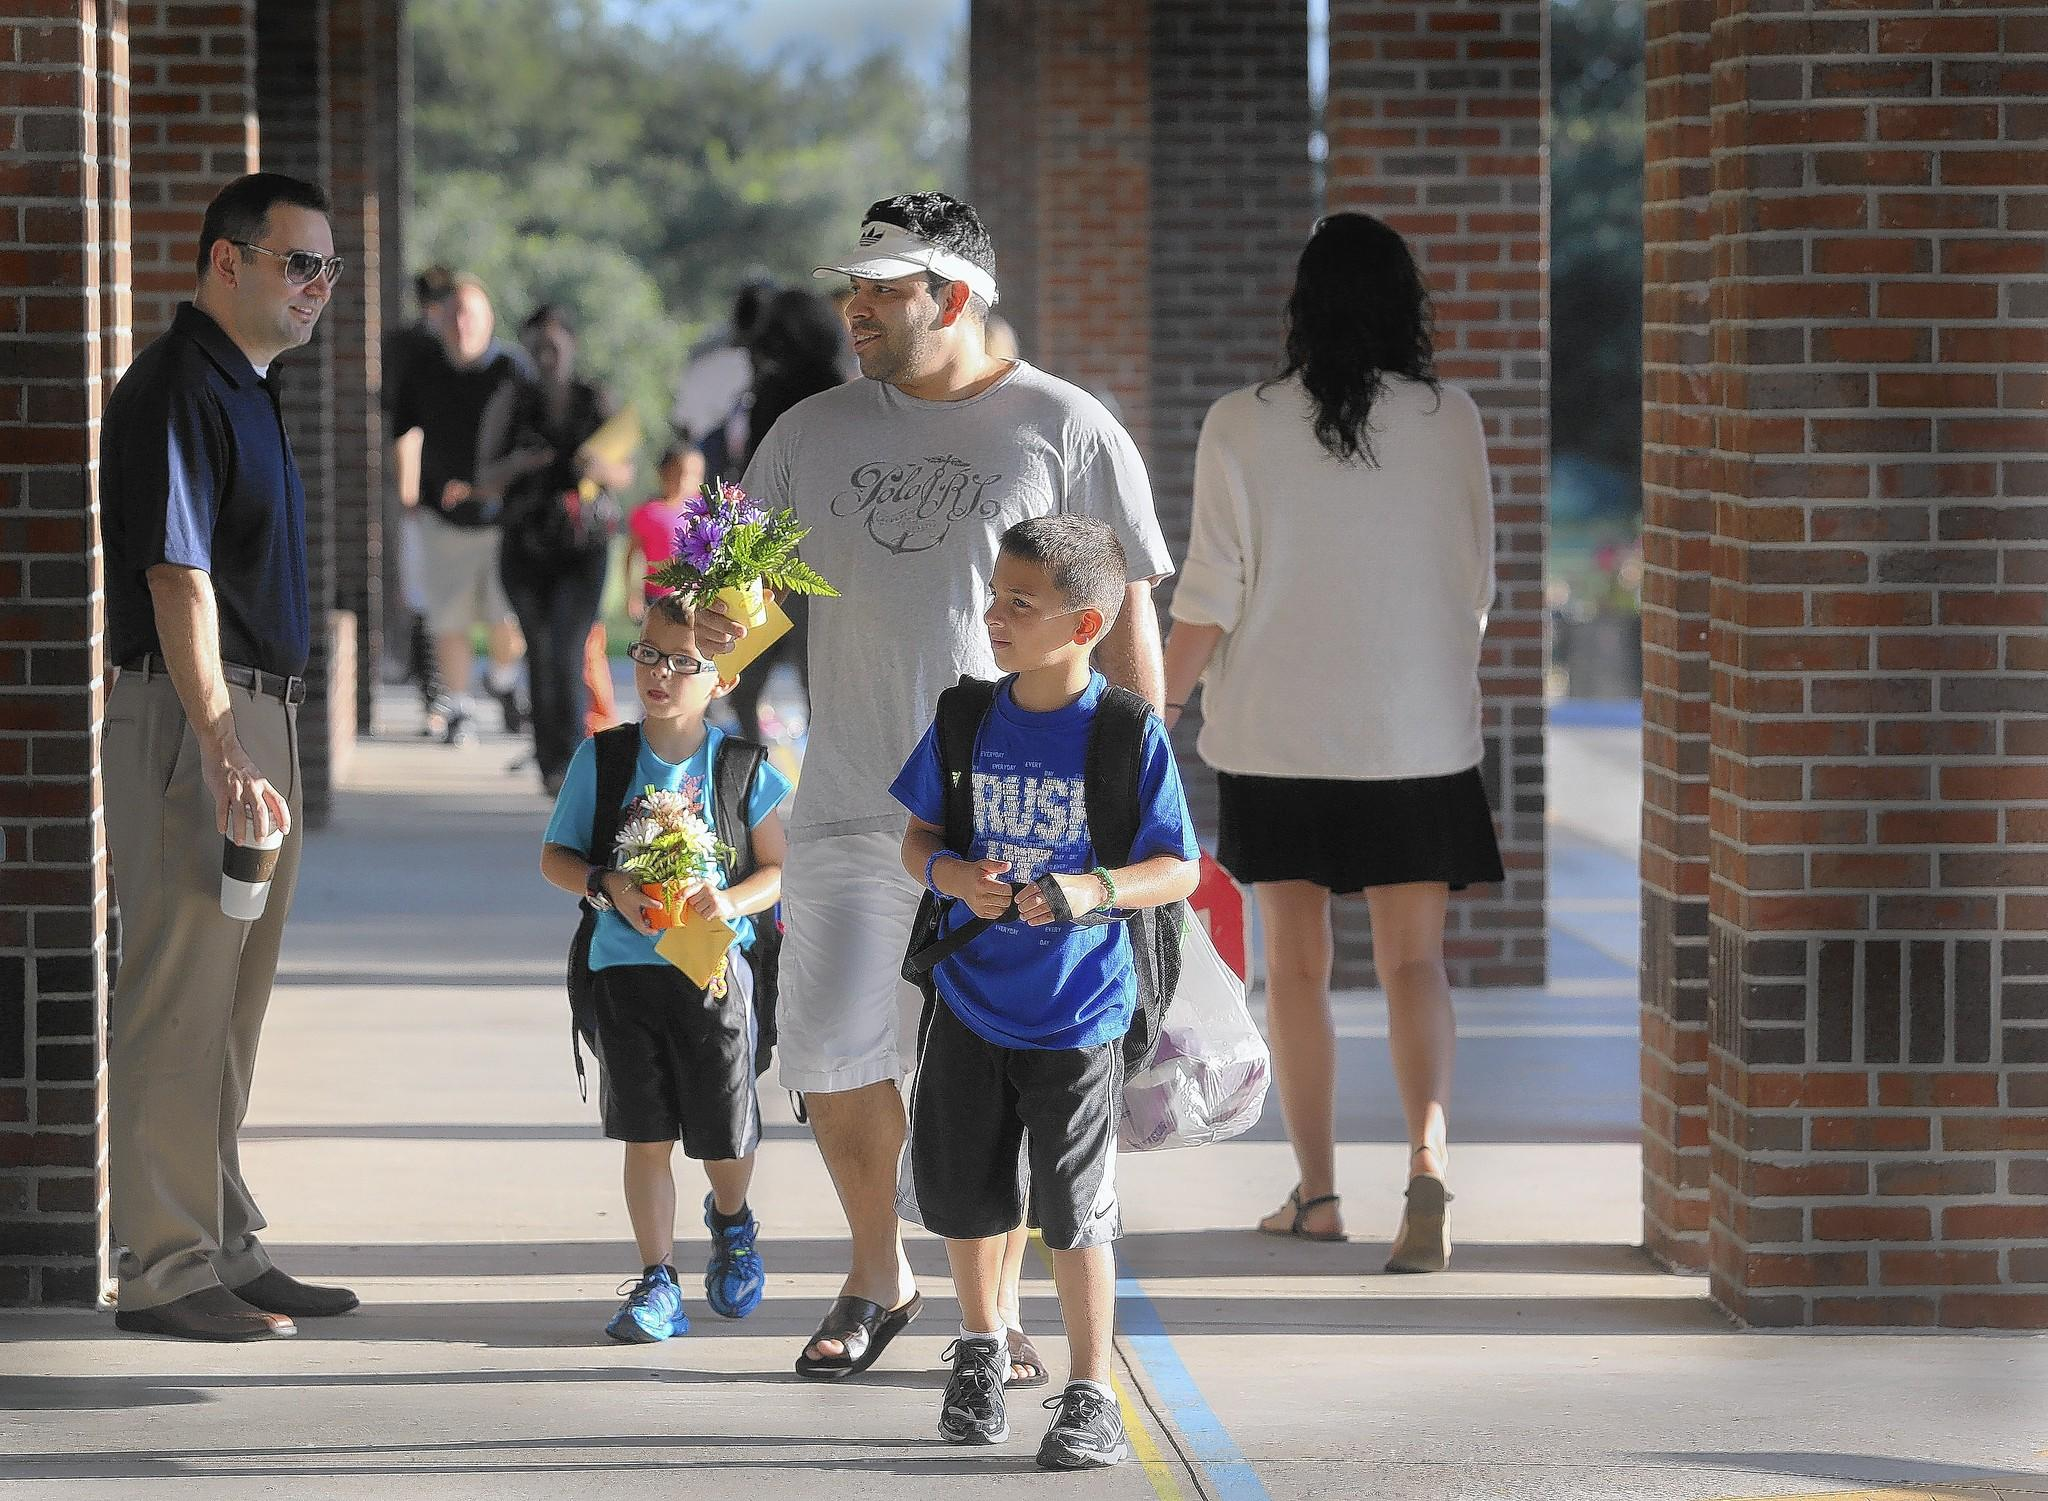 Pablo Medina arrives at Round Lake Elementary School on Monday with sons Gavin, l, 6 and Gabriel, 7, on the first day of school in Lake County. ( Tom Benitez/Orlando Sentinel